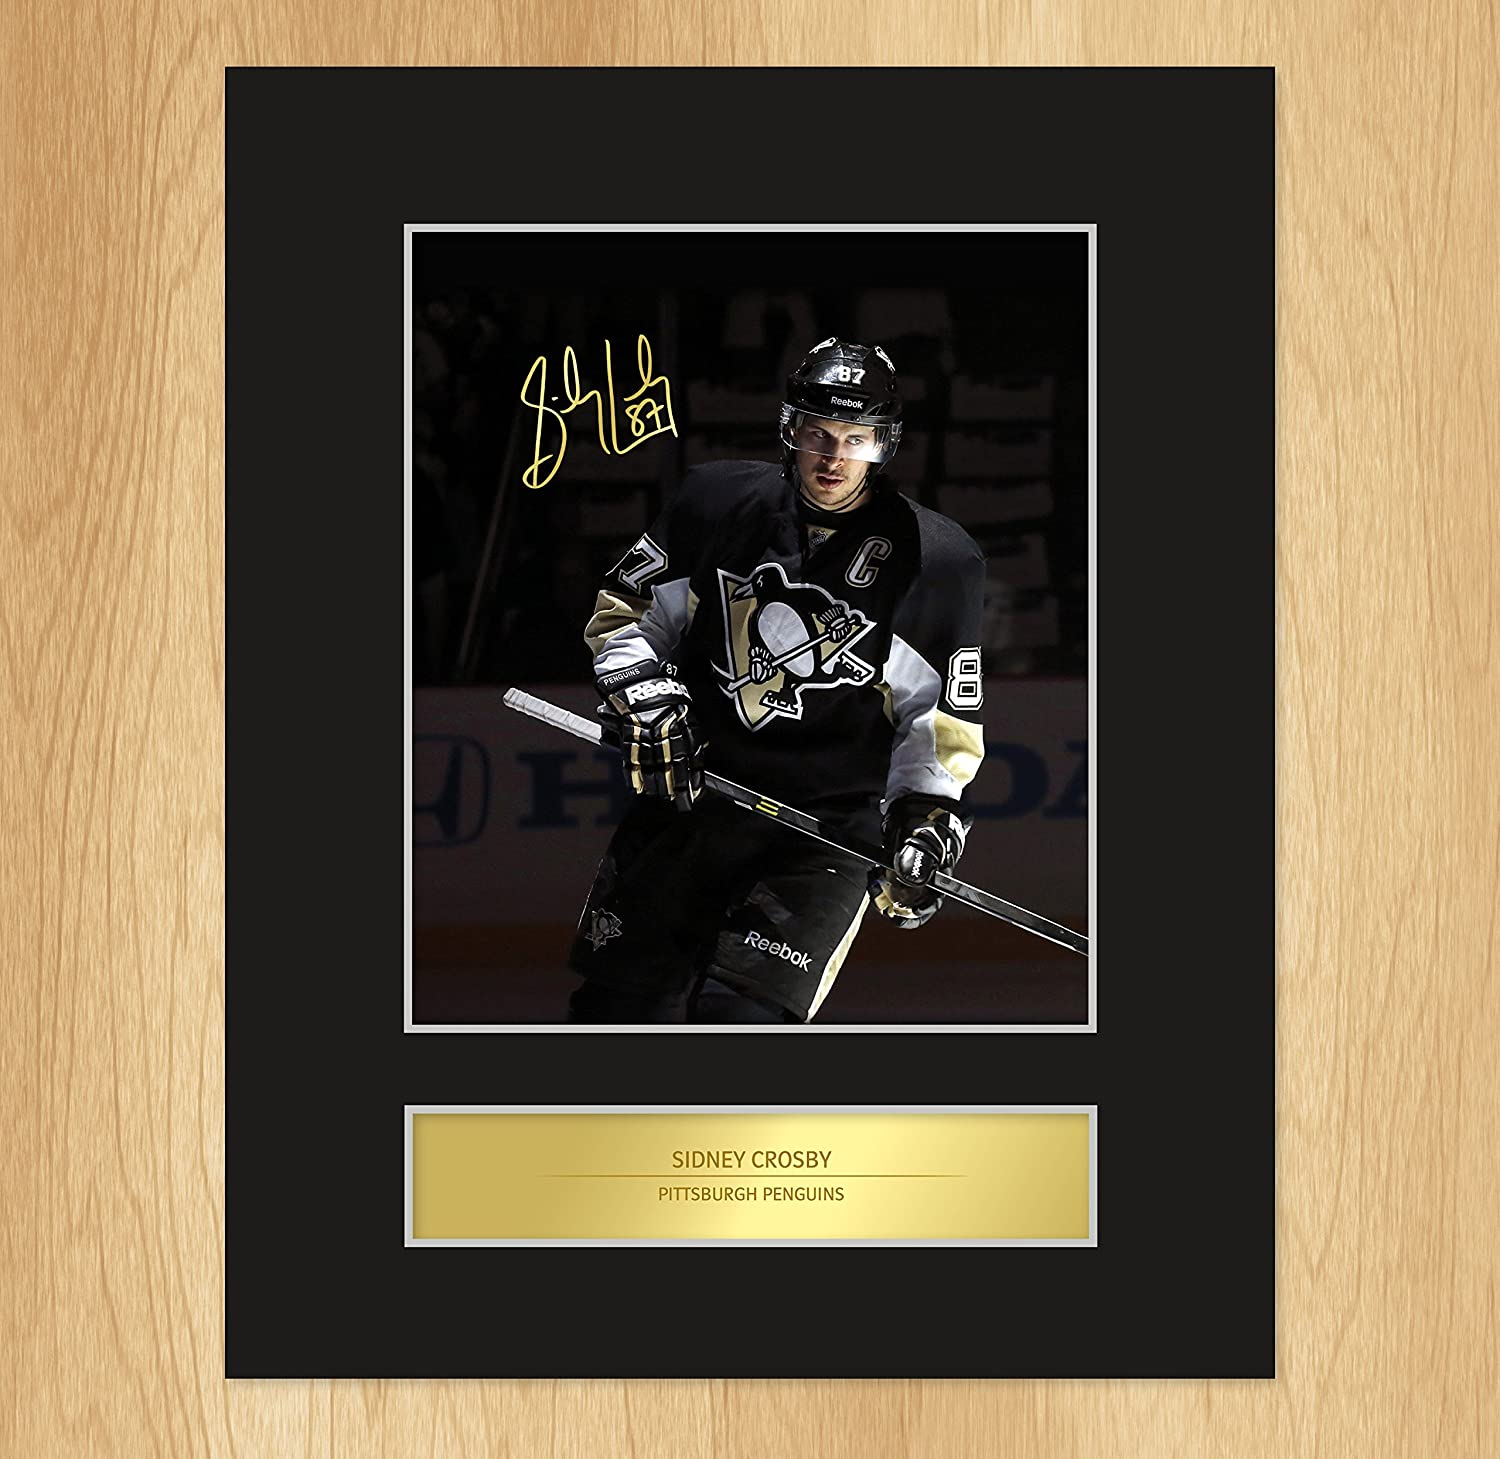 Amazon.de: Foto Sidney Crosby Pittsburgh Penguins, signiert, befestigt